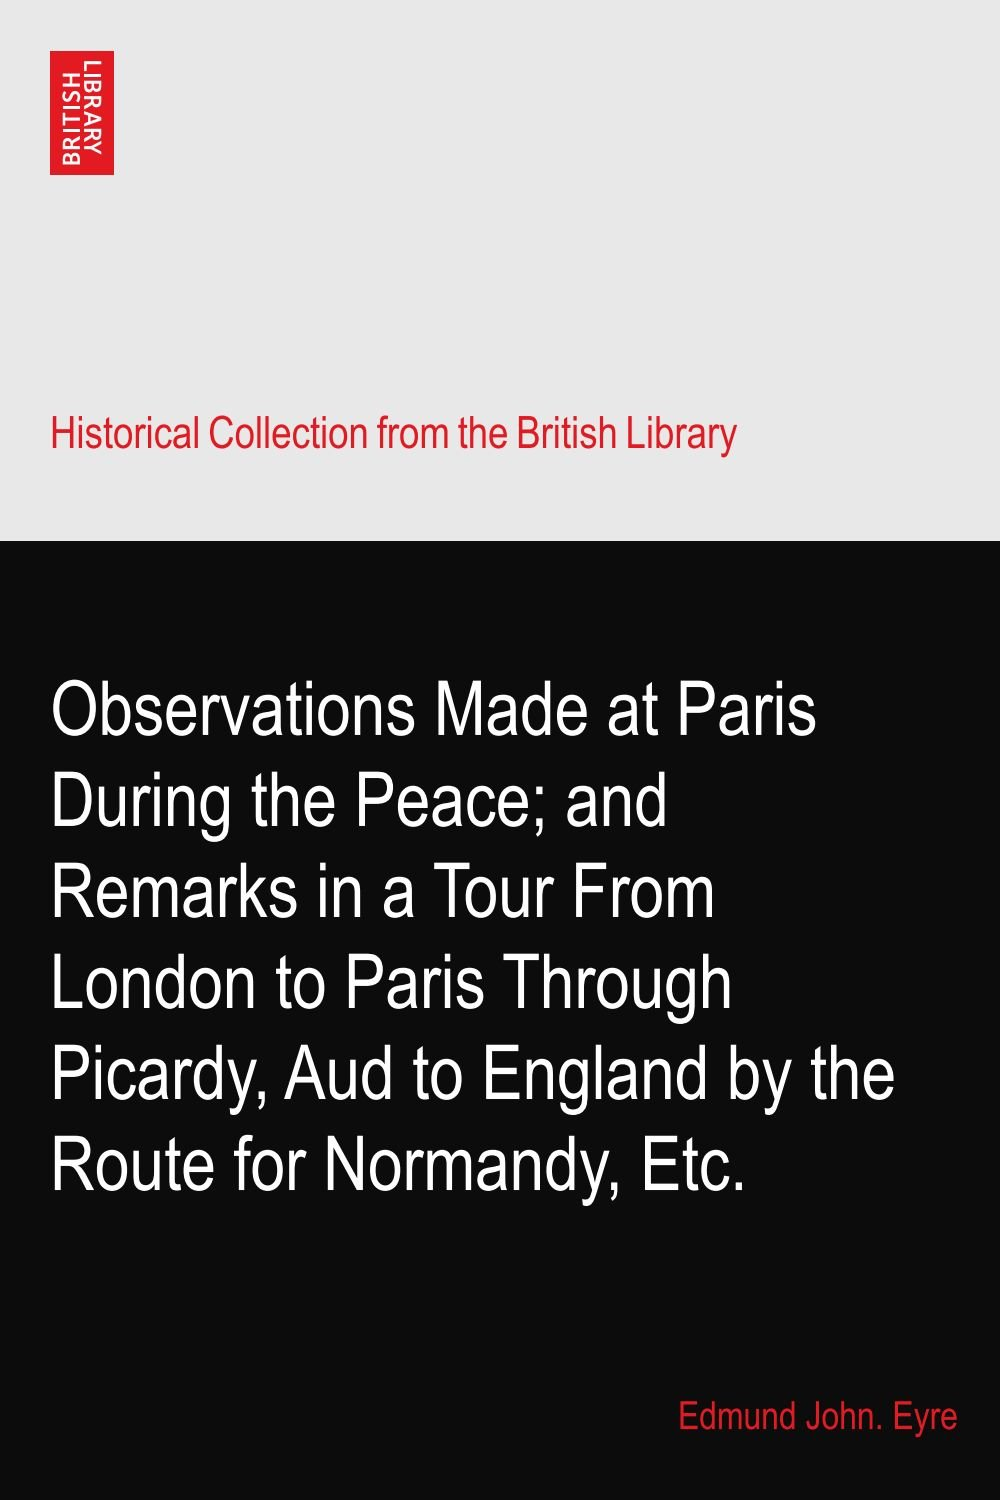 Observations Made at Paris During the Peace; and Remarks in a Tour From London to Paris Through Picardy, Aud to England by the Route for Normandy, Etc. ebook